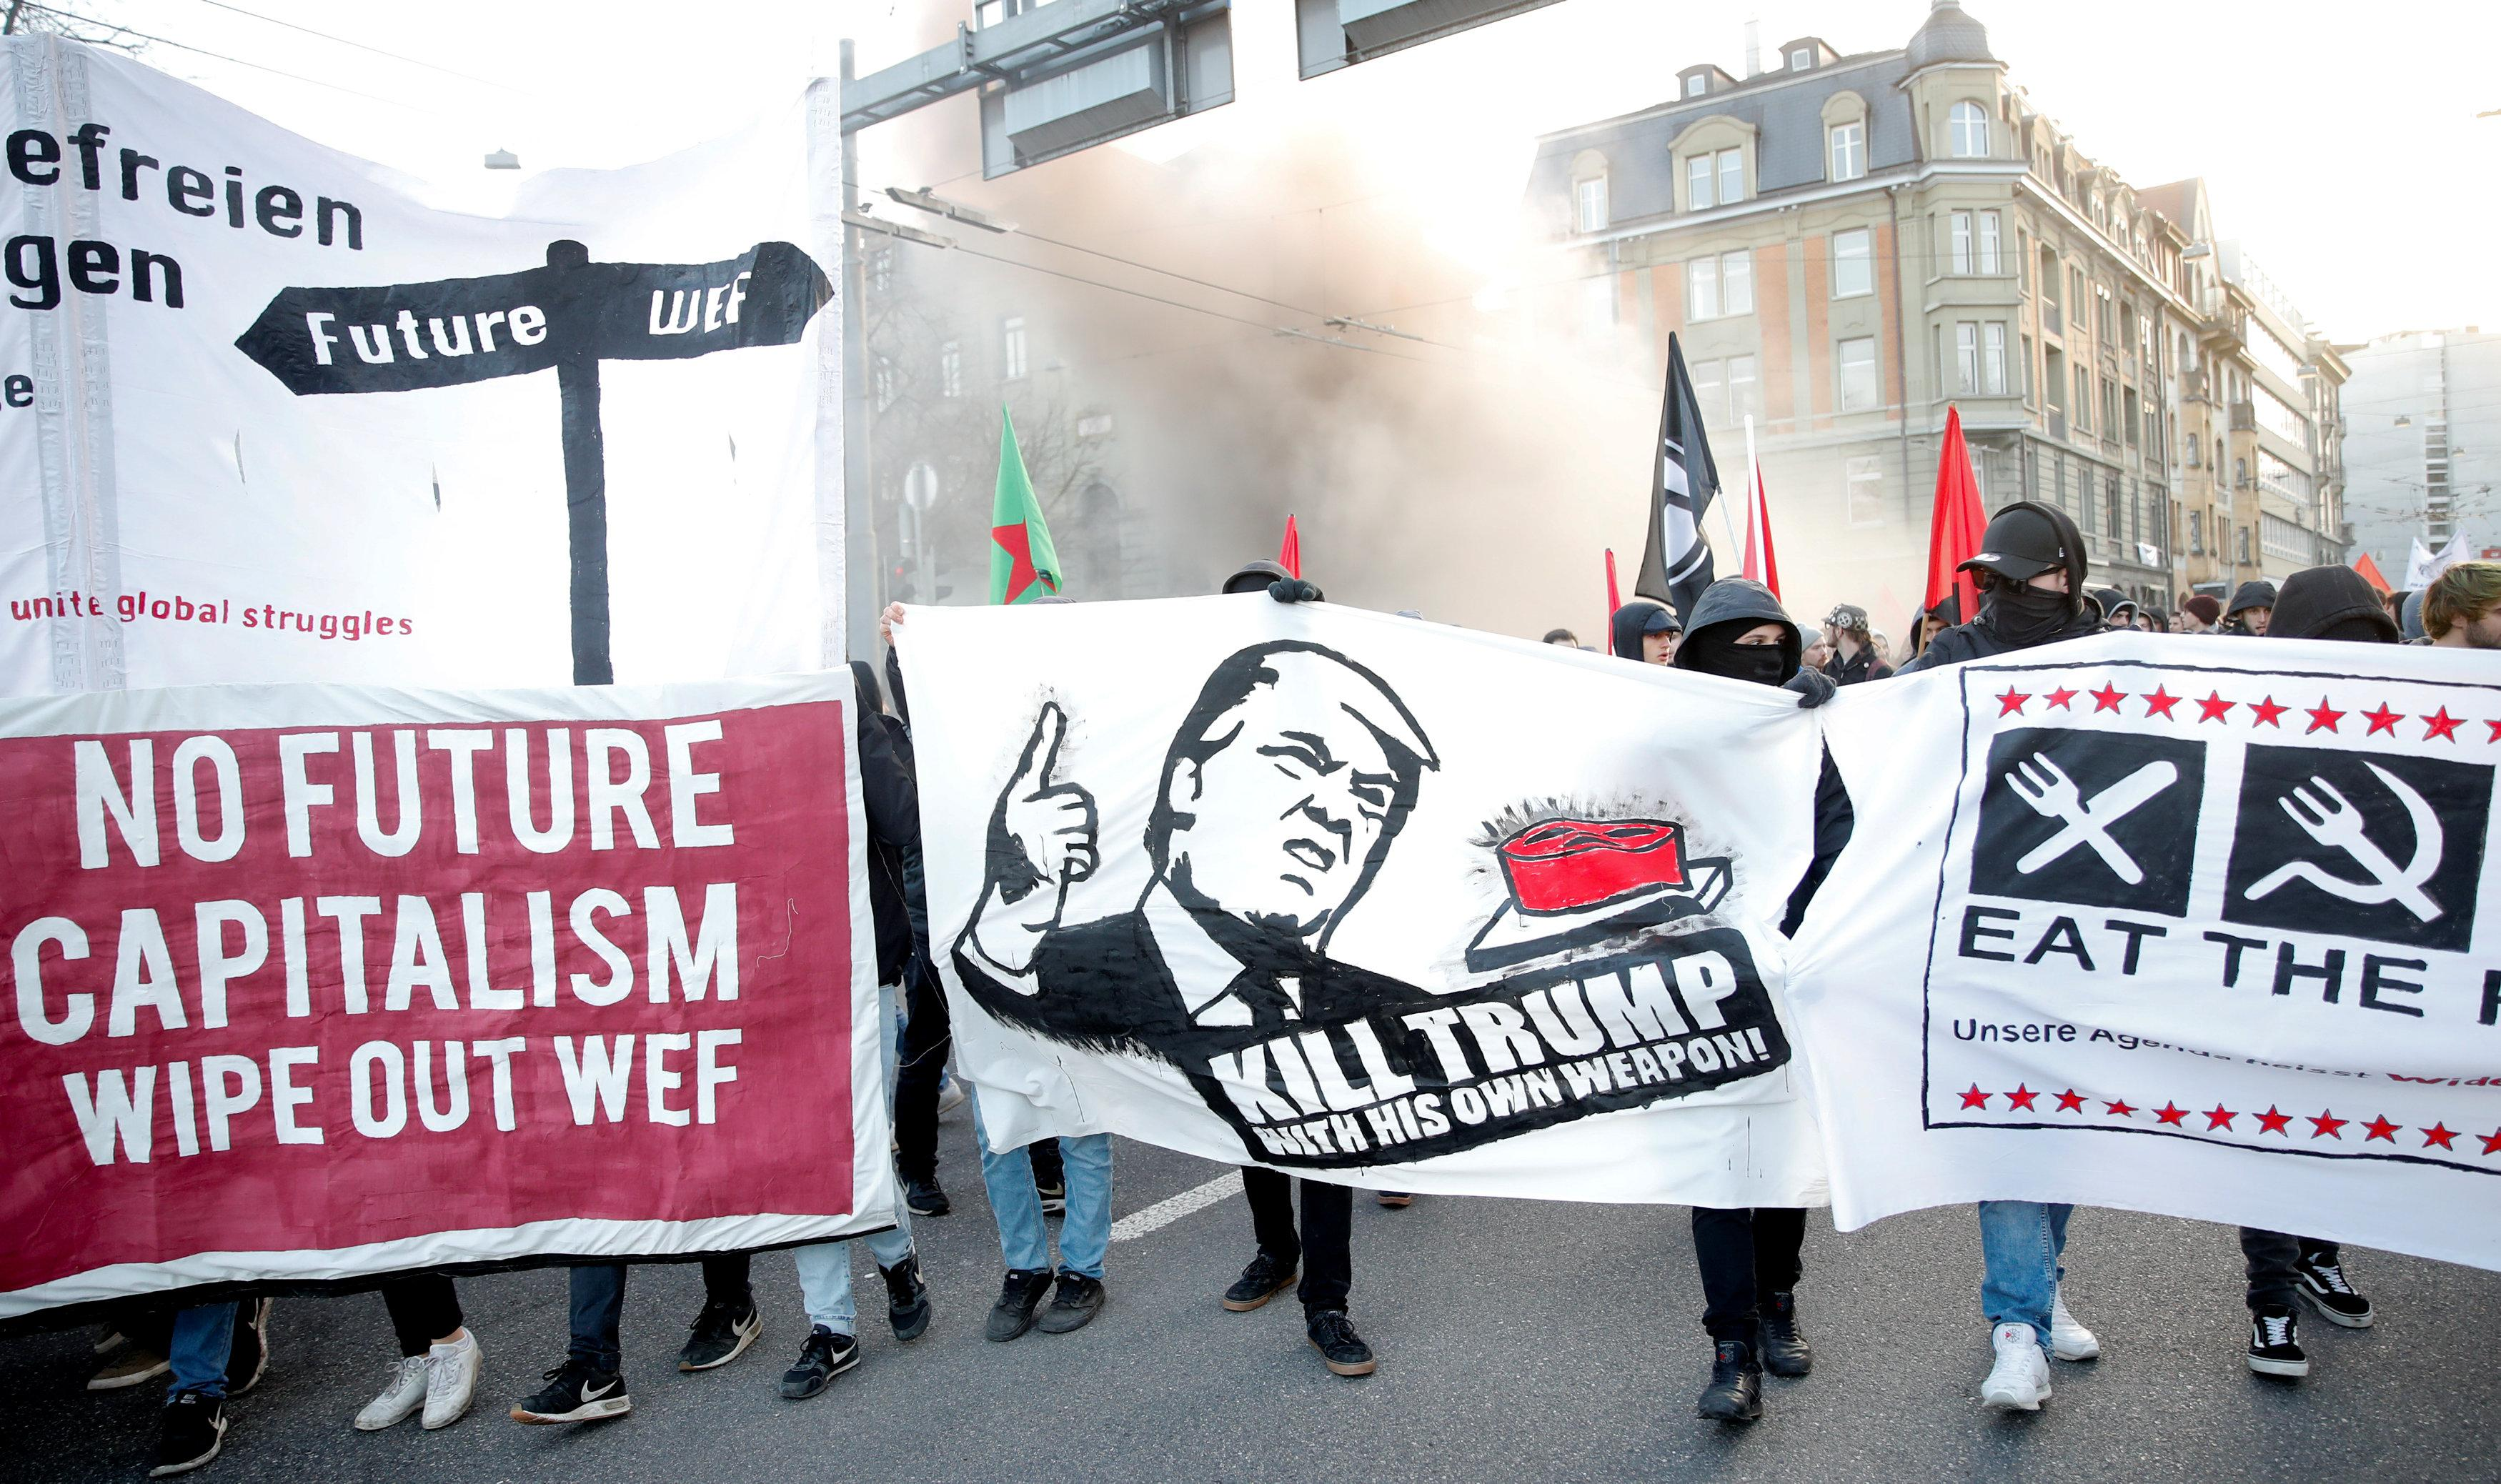 Merkels conservatives spd agree on german coalition blueprint anti trump demonstrators march in swiss capital malvernweather Image collections